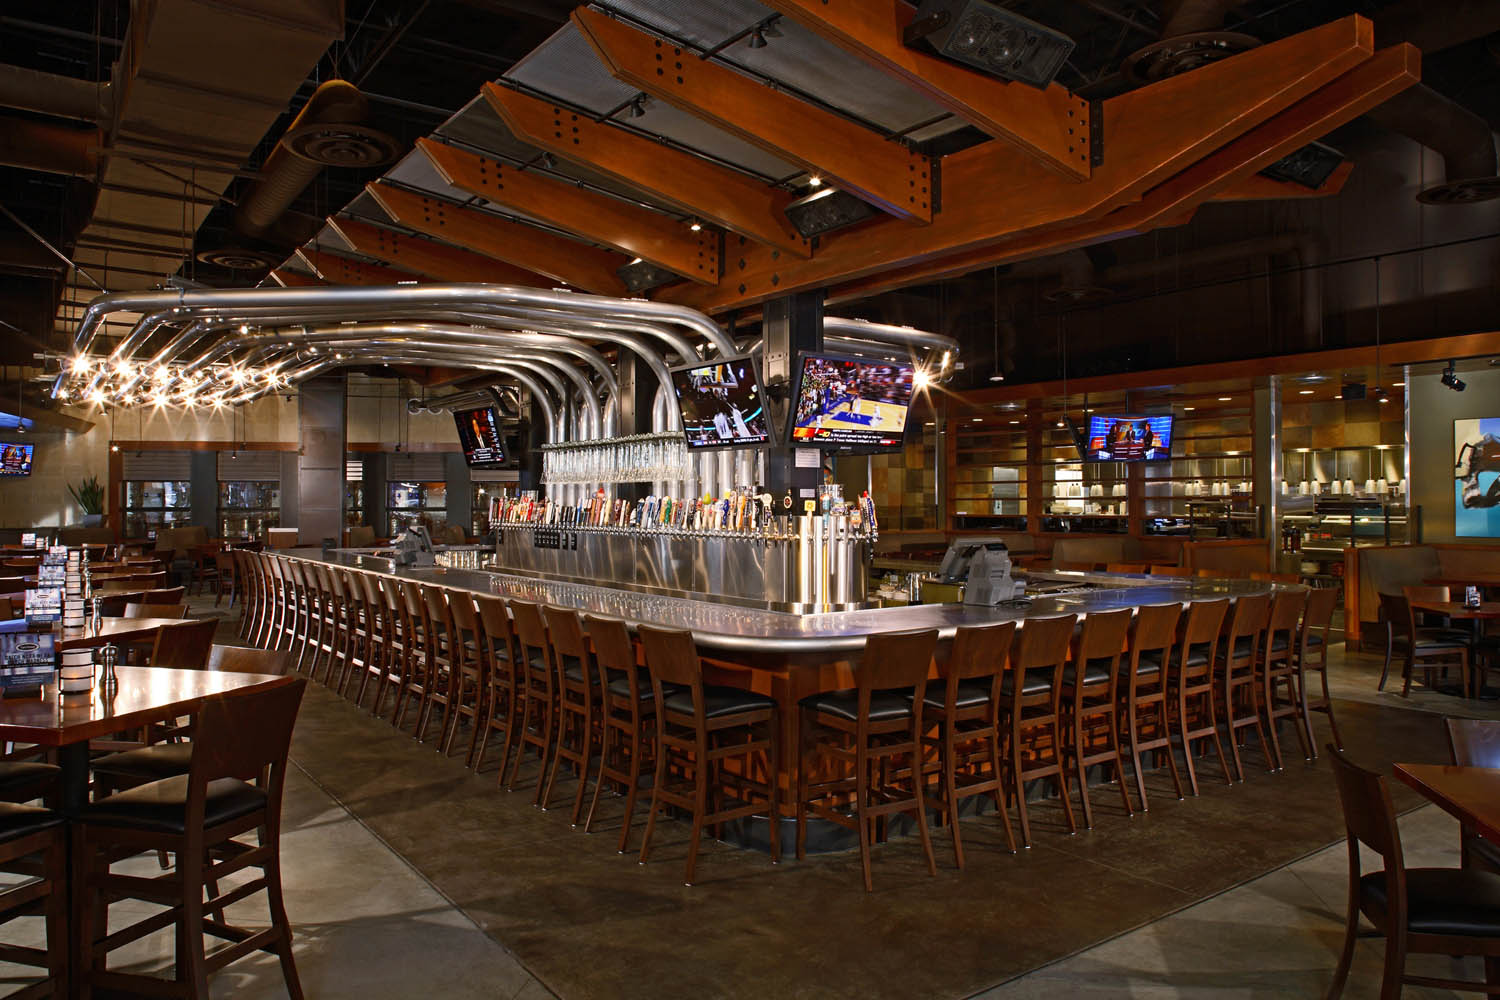 Yard house opening in addison oct 29 cravedfw - Bars for the house ...